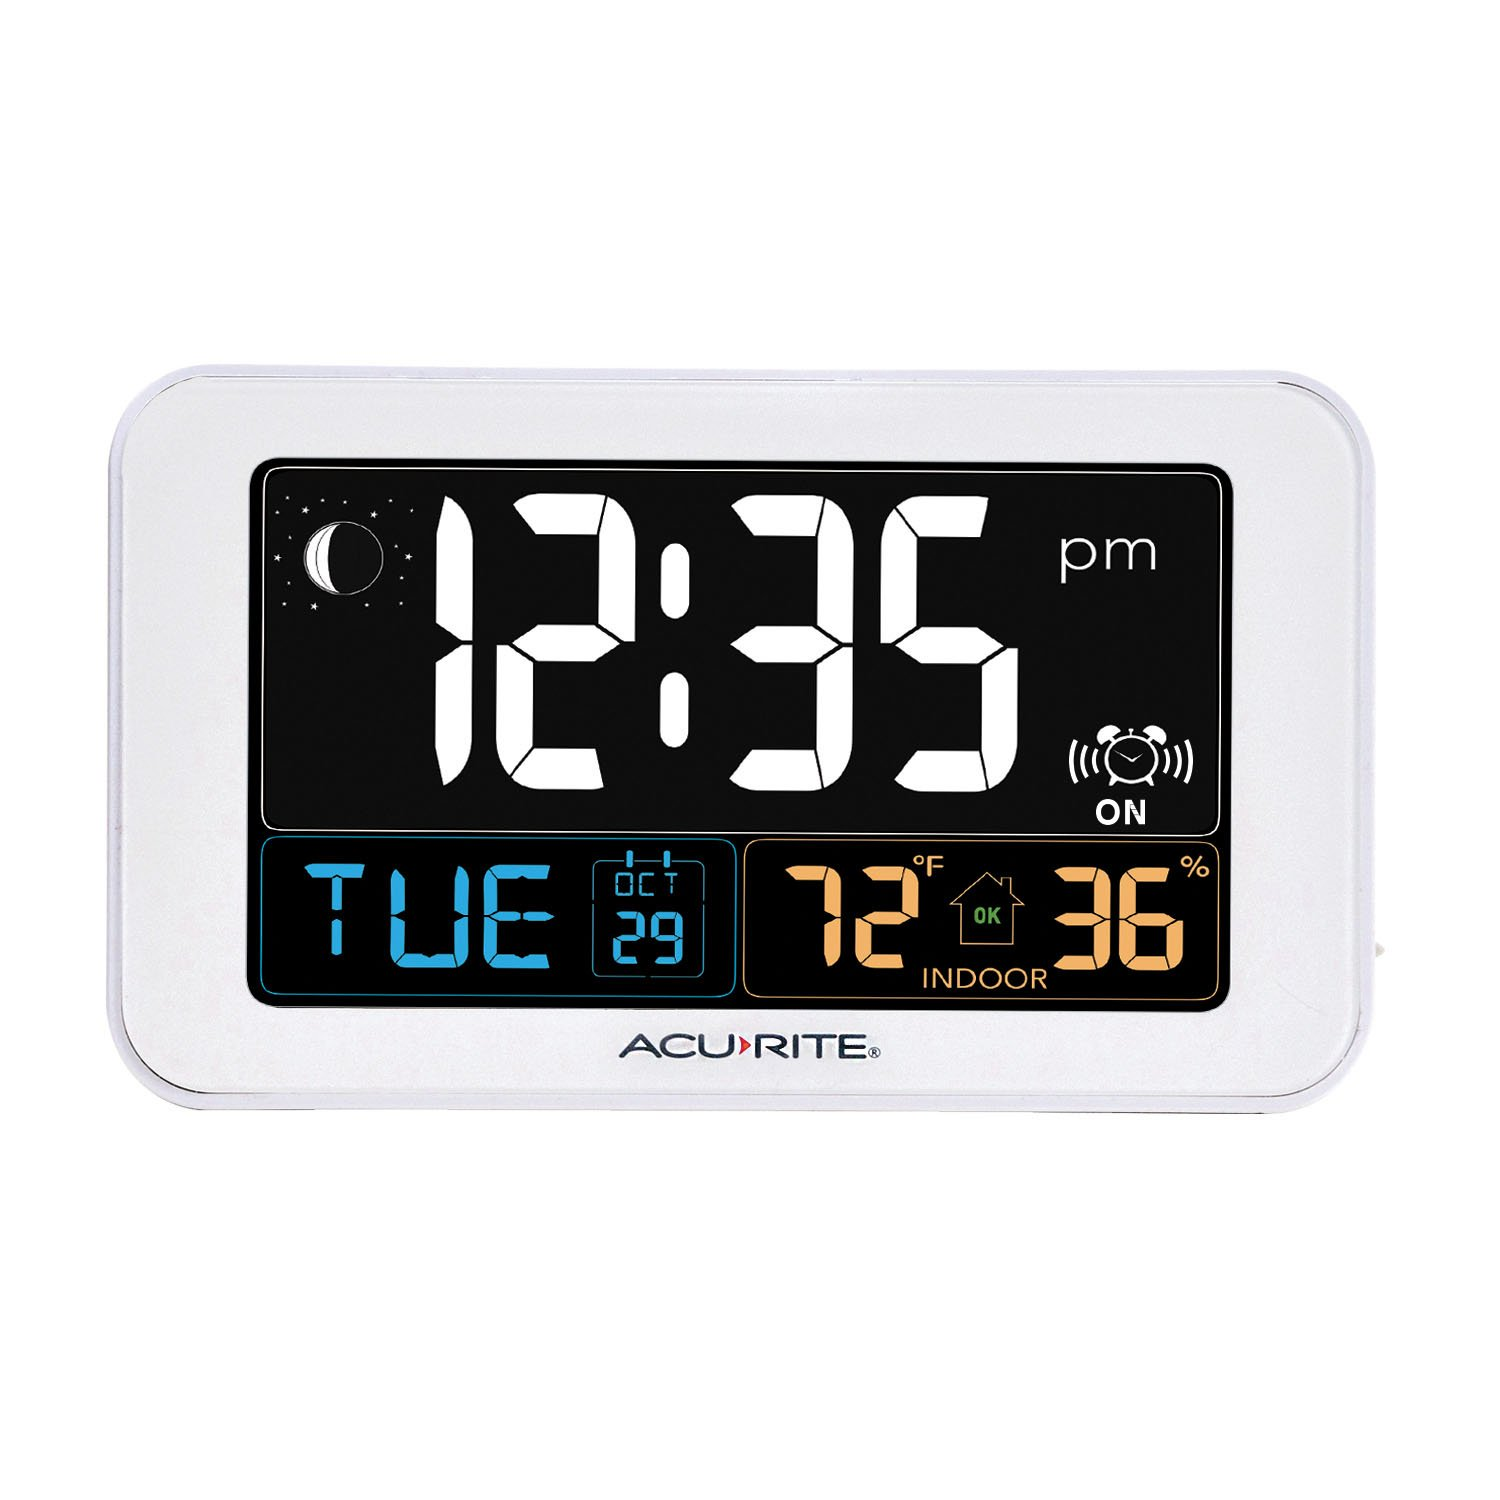 AcuRite Intelli-Time Alarm Clock with USB Charger, Indoor Temperature and Humidity (13040CA)